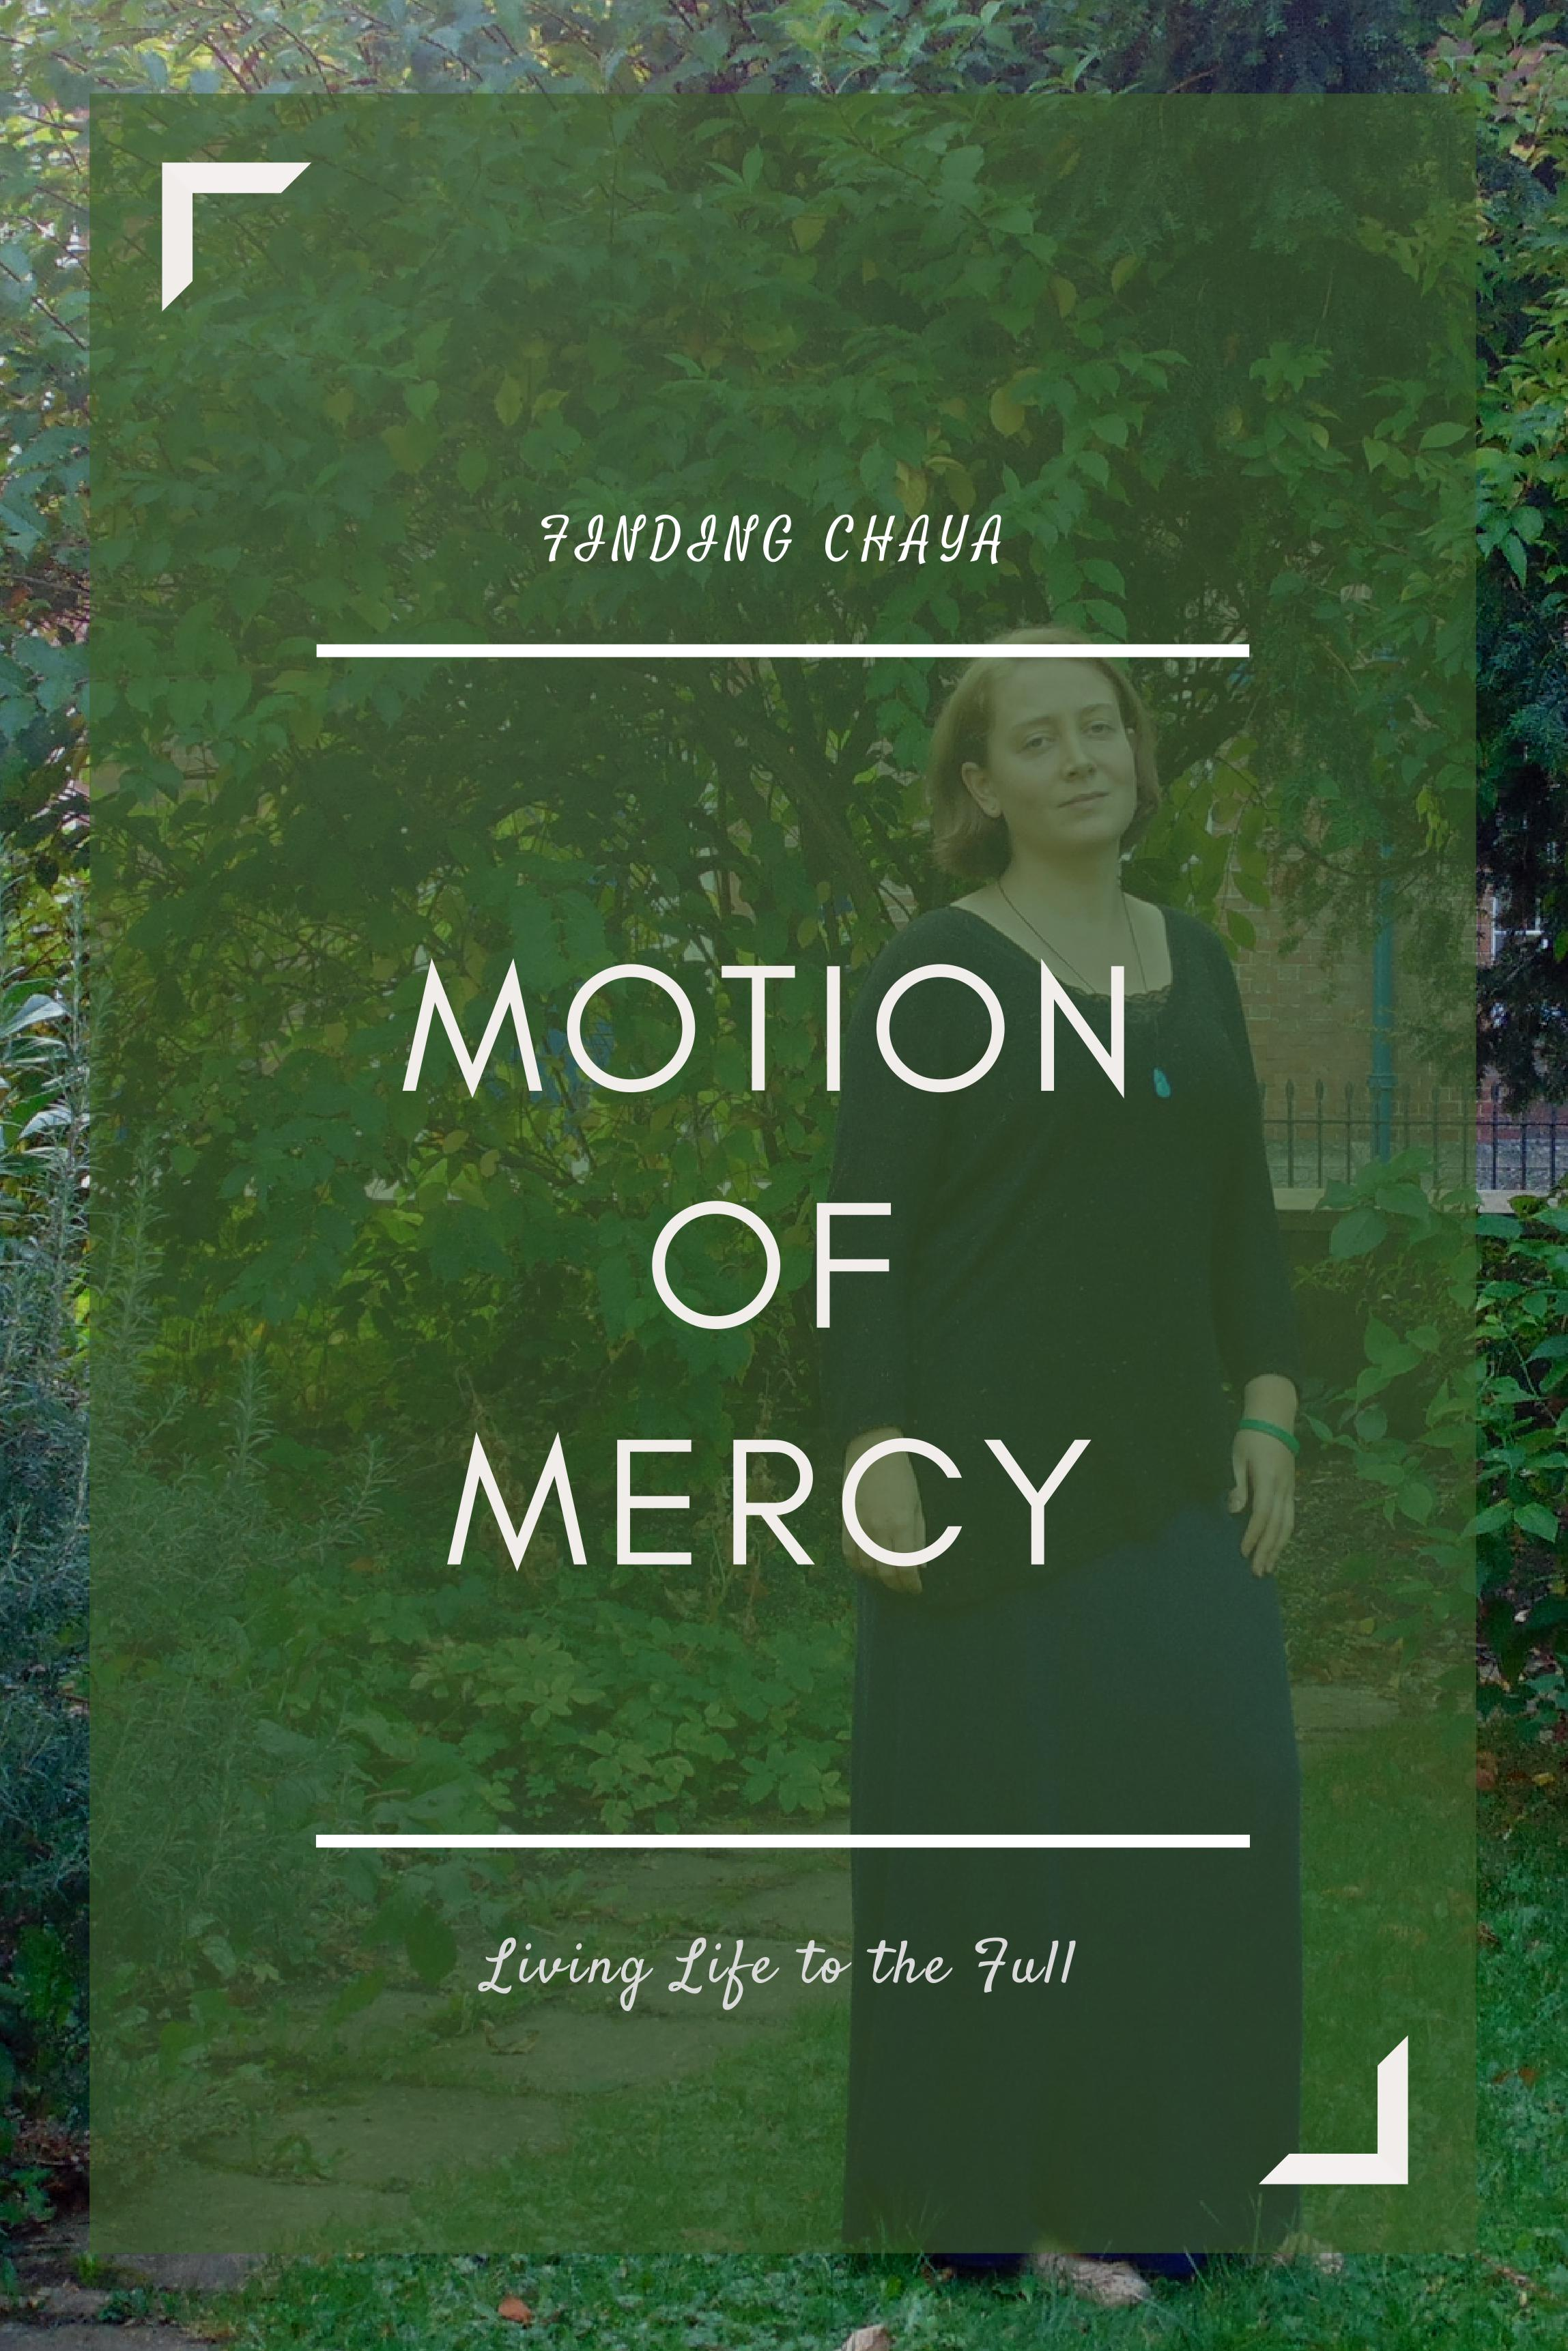 Motion of Mercy: Unconditional Love is Mindblowing